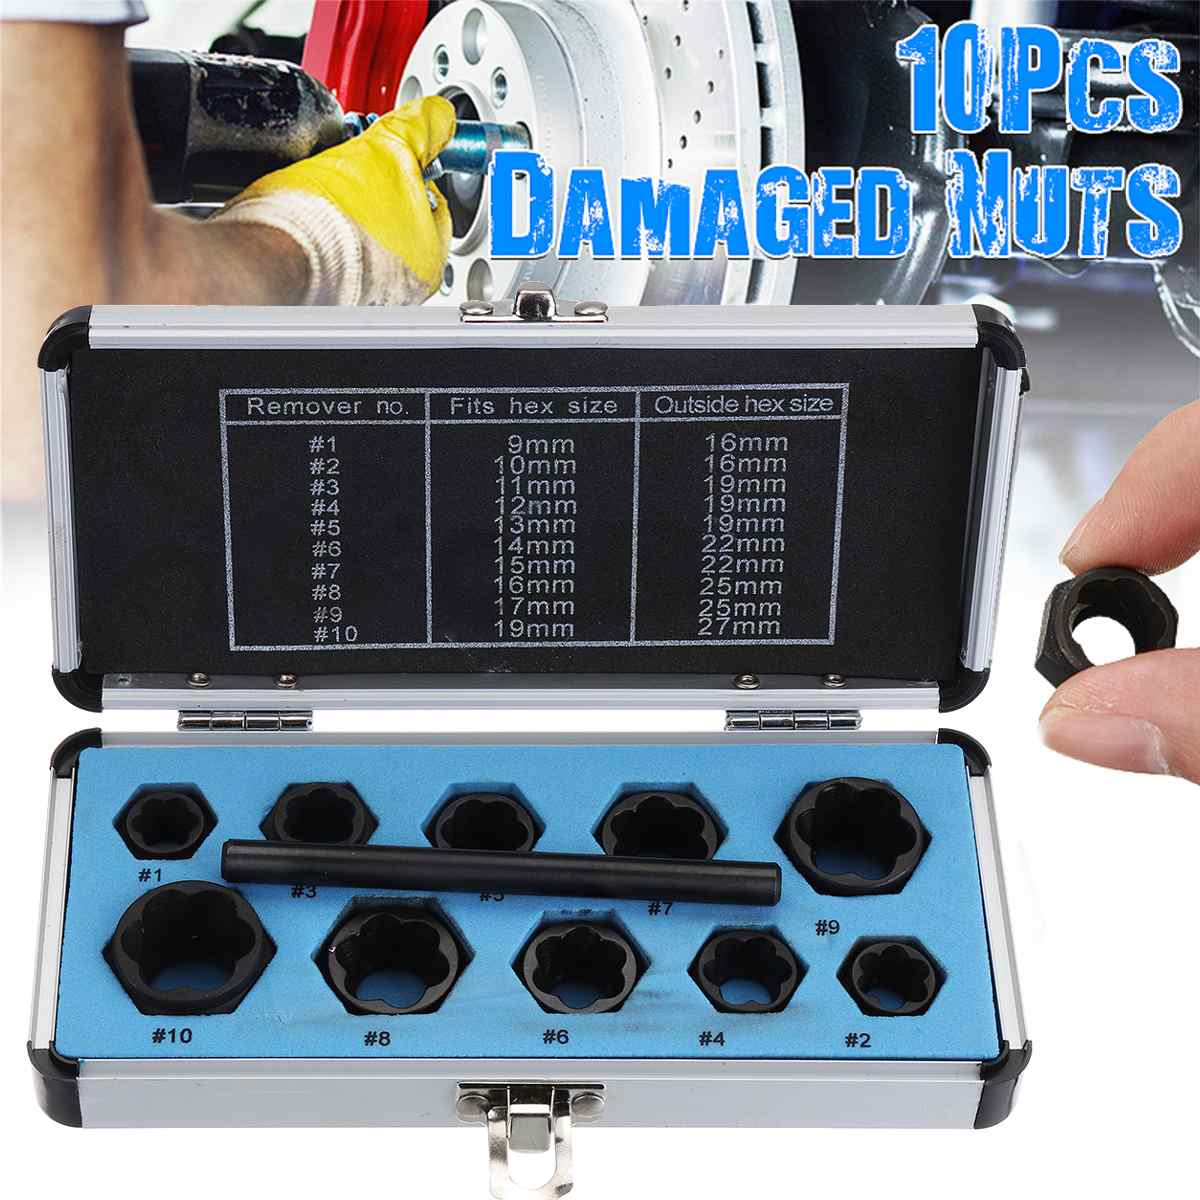 NEW 11pcs Damaged Nut Bolt Stud Extractor Tool Kit for Removal Damaged Nuts USA